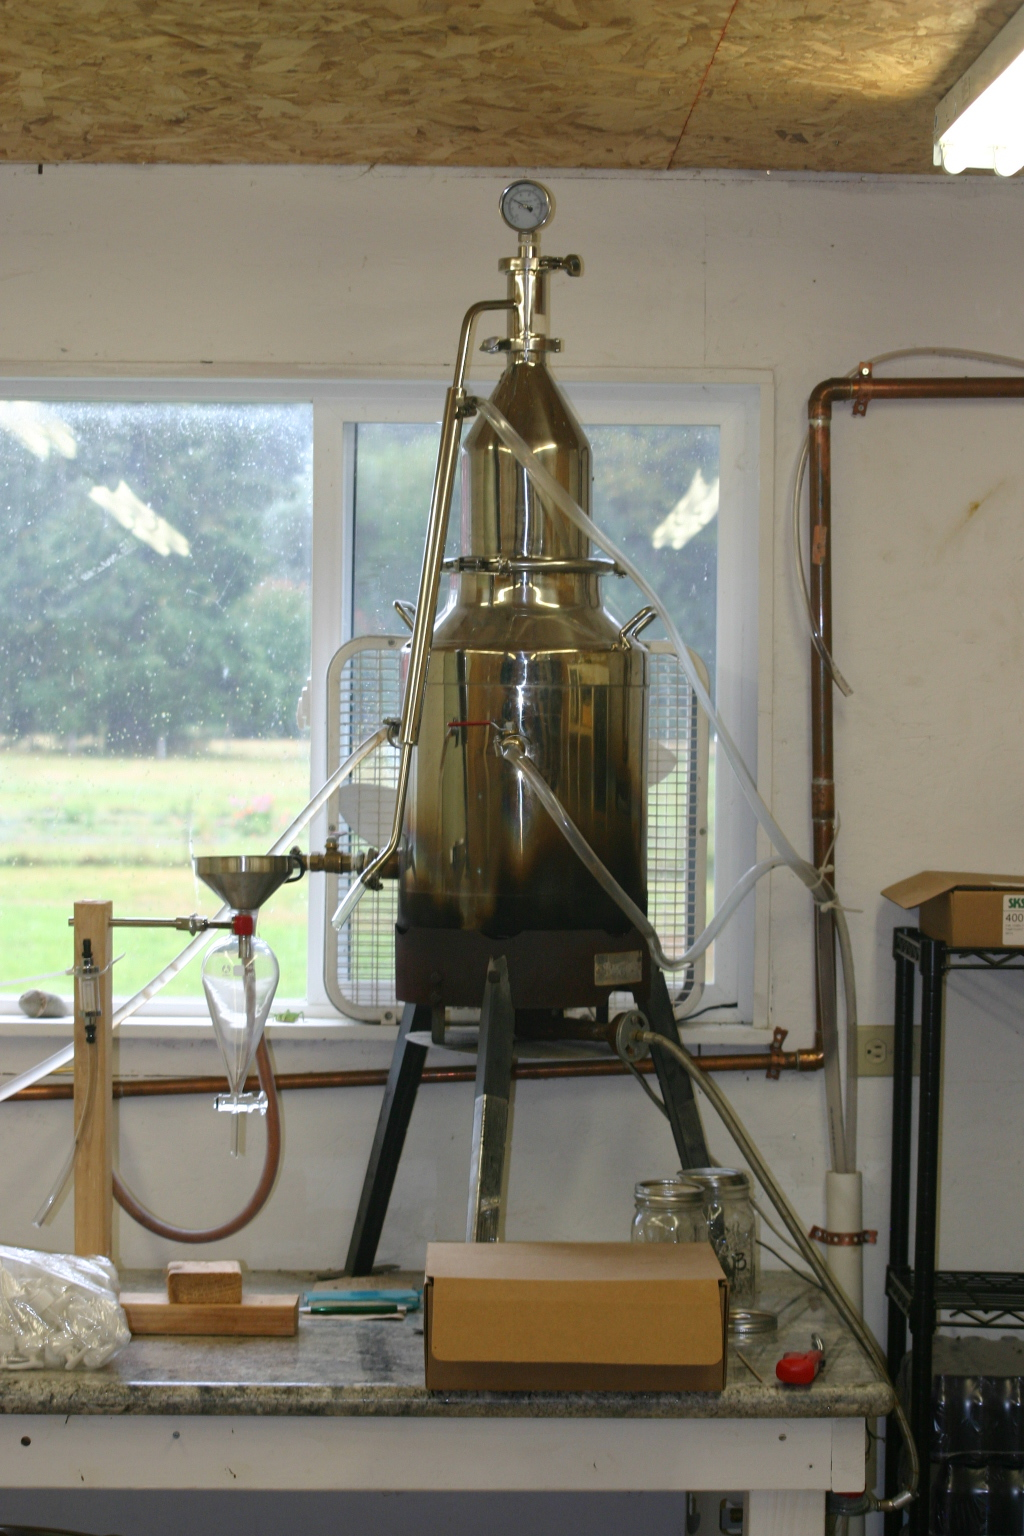 The magic distilling machine!